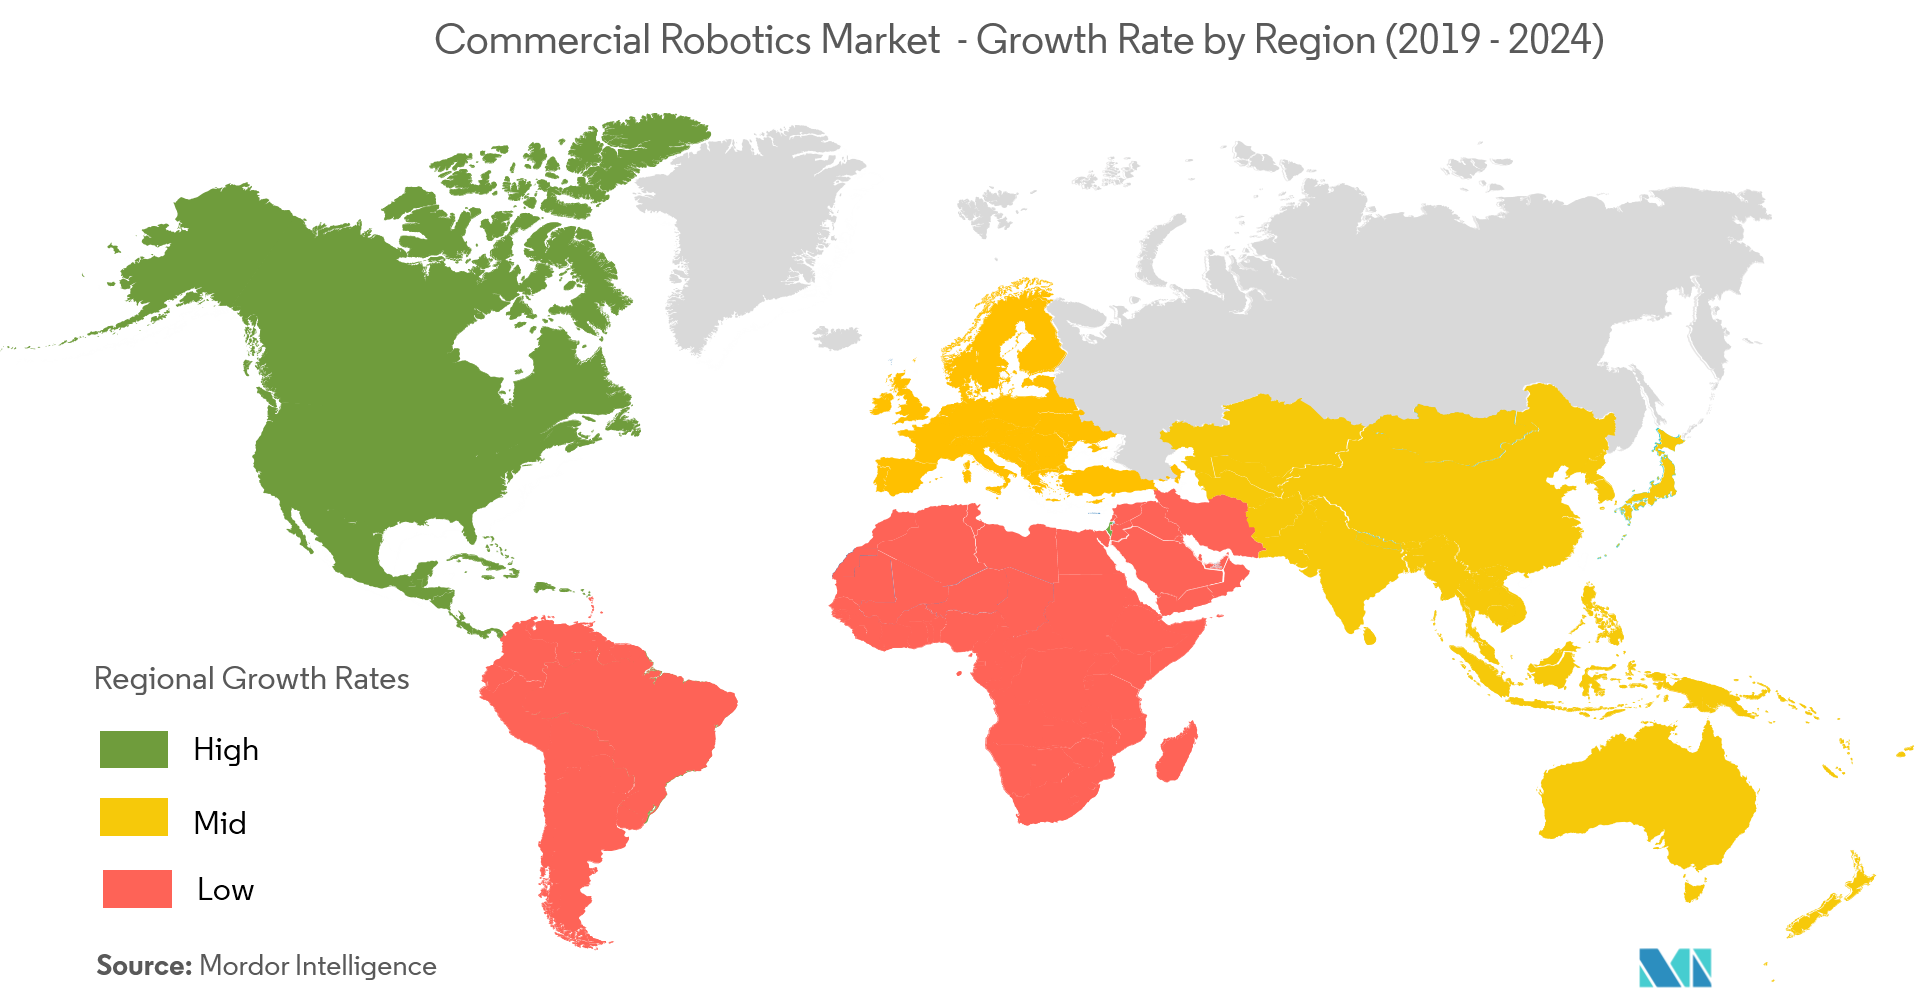 Commercial Robotics Market Growth Rate By Region